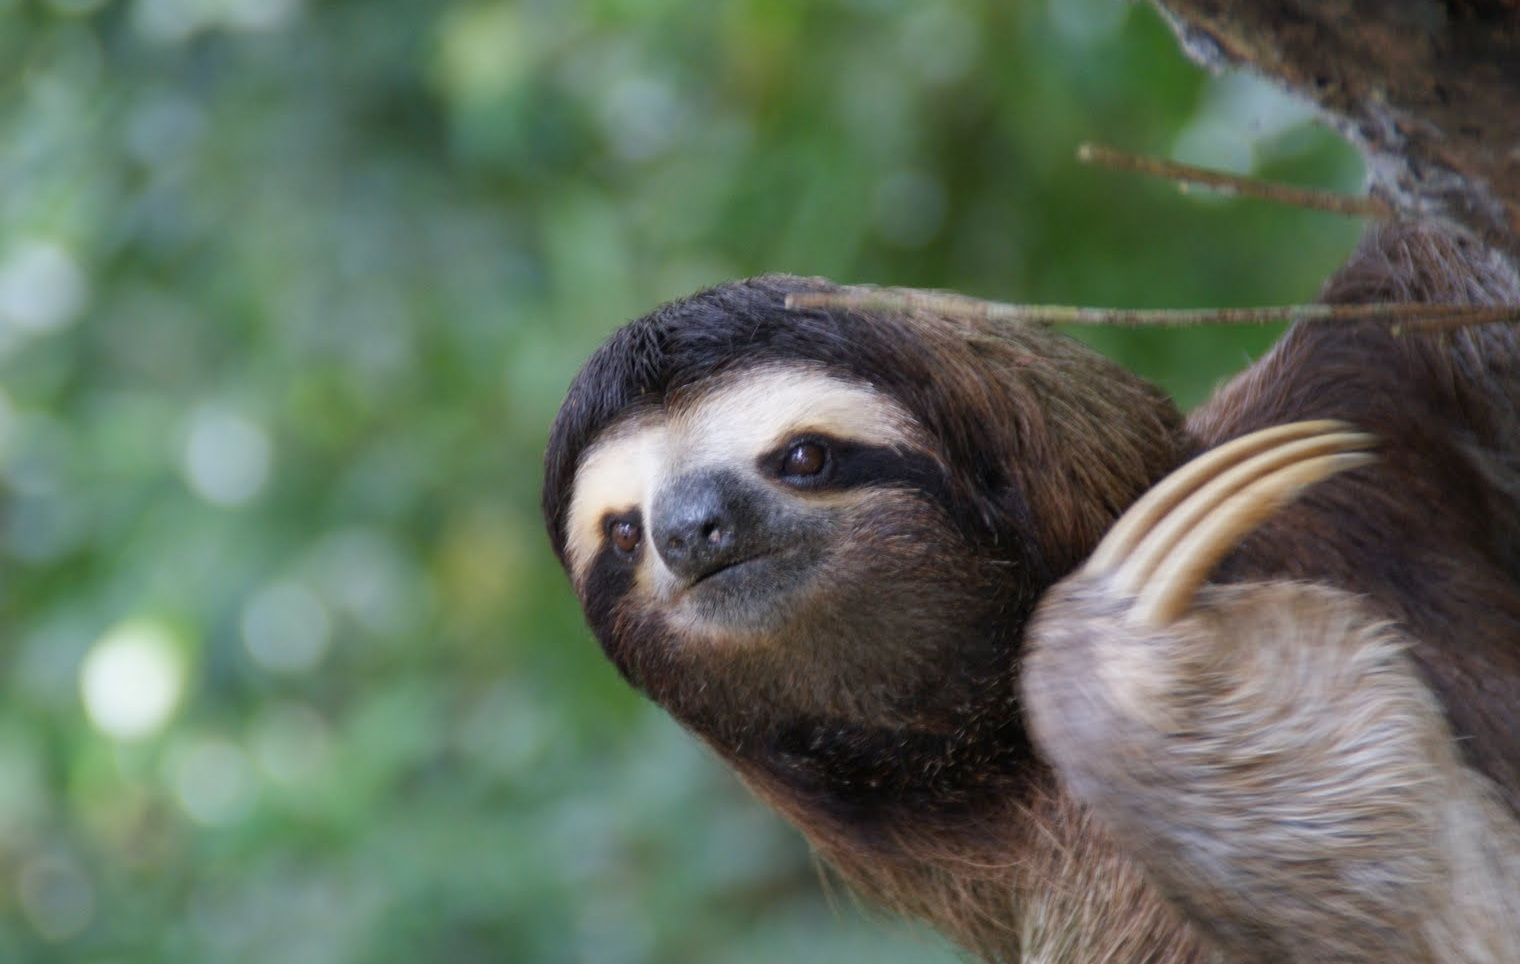 Cute Duck Wallpapers Download Maned Three Toed Sloth Pictures On Animal Picture